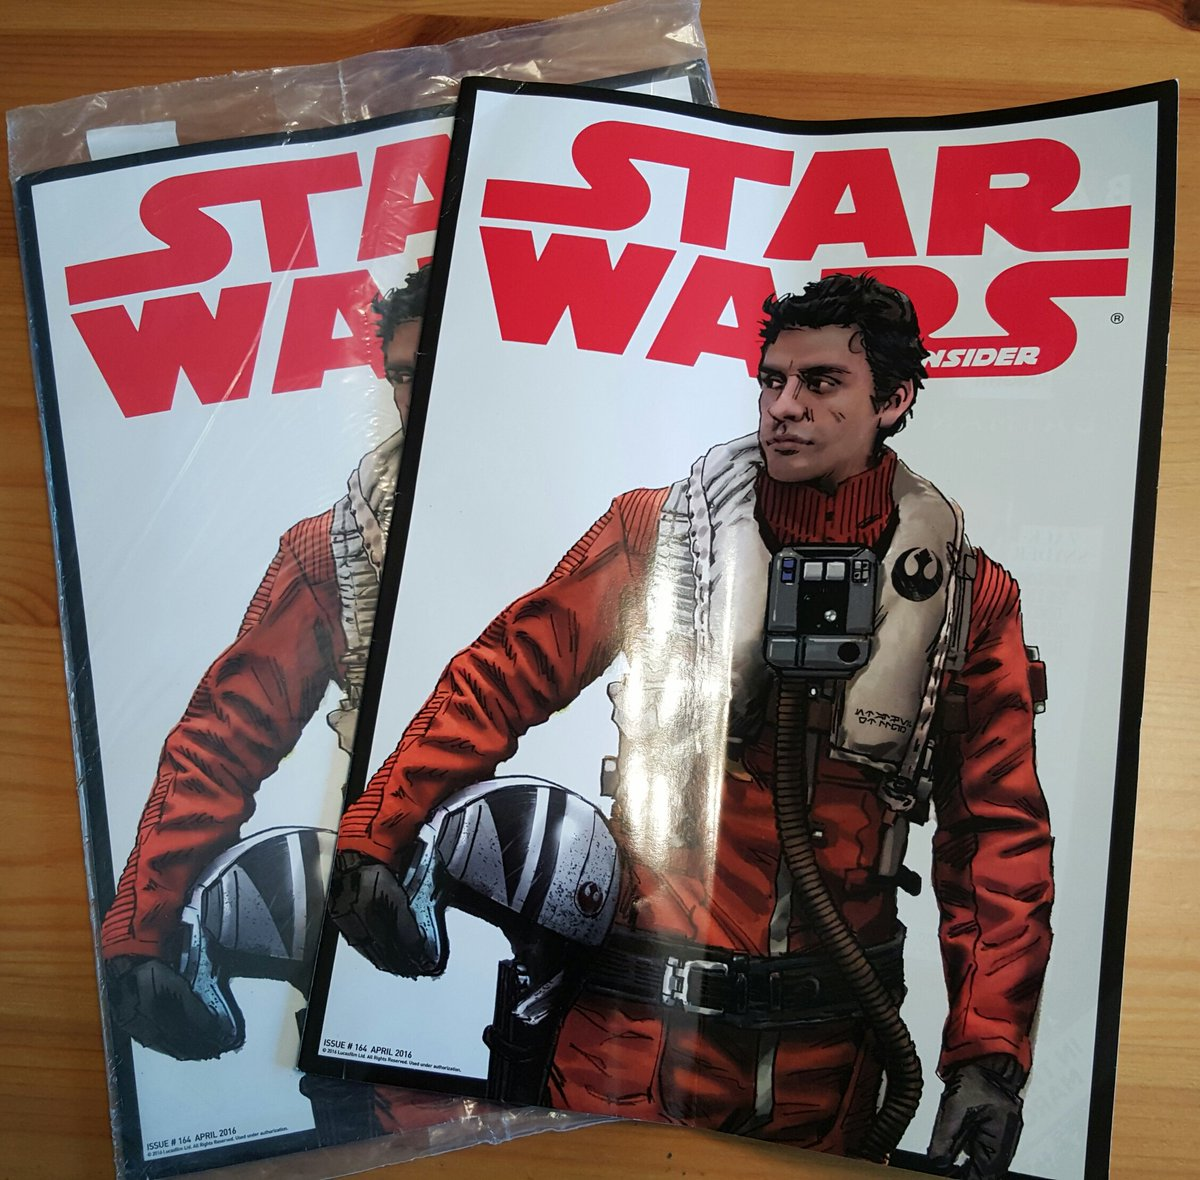 .@SW_Insider #164 has arrived. #StarWars #PoeDameron #Poe https://t.co/wOvZXu4Og5